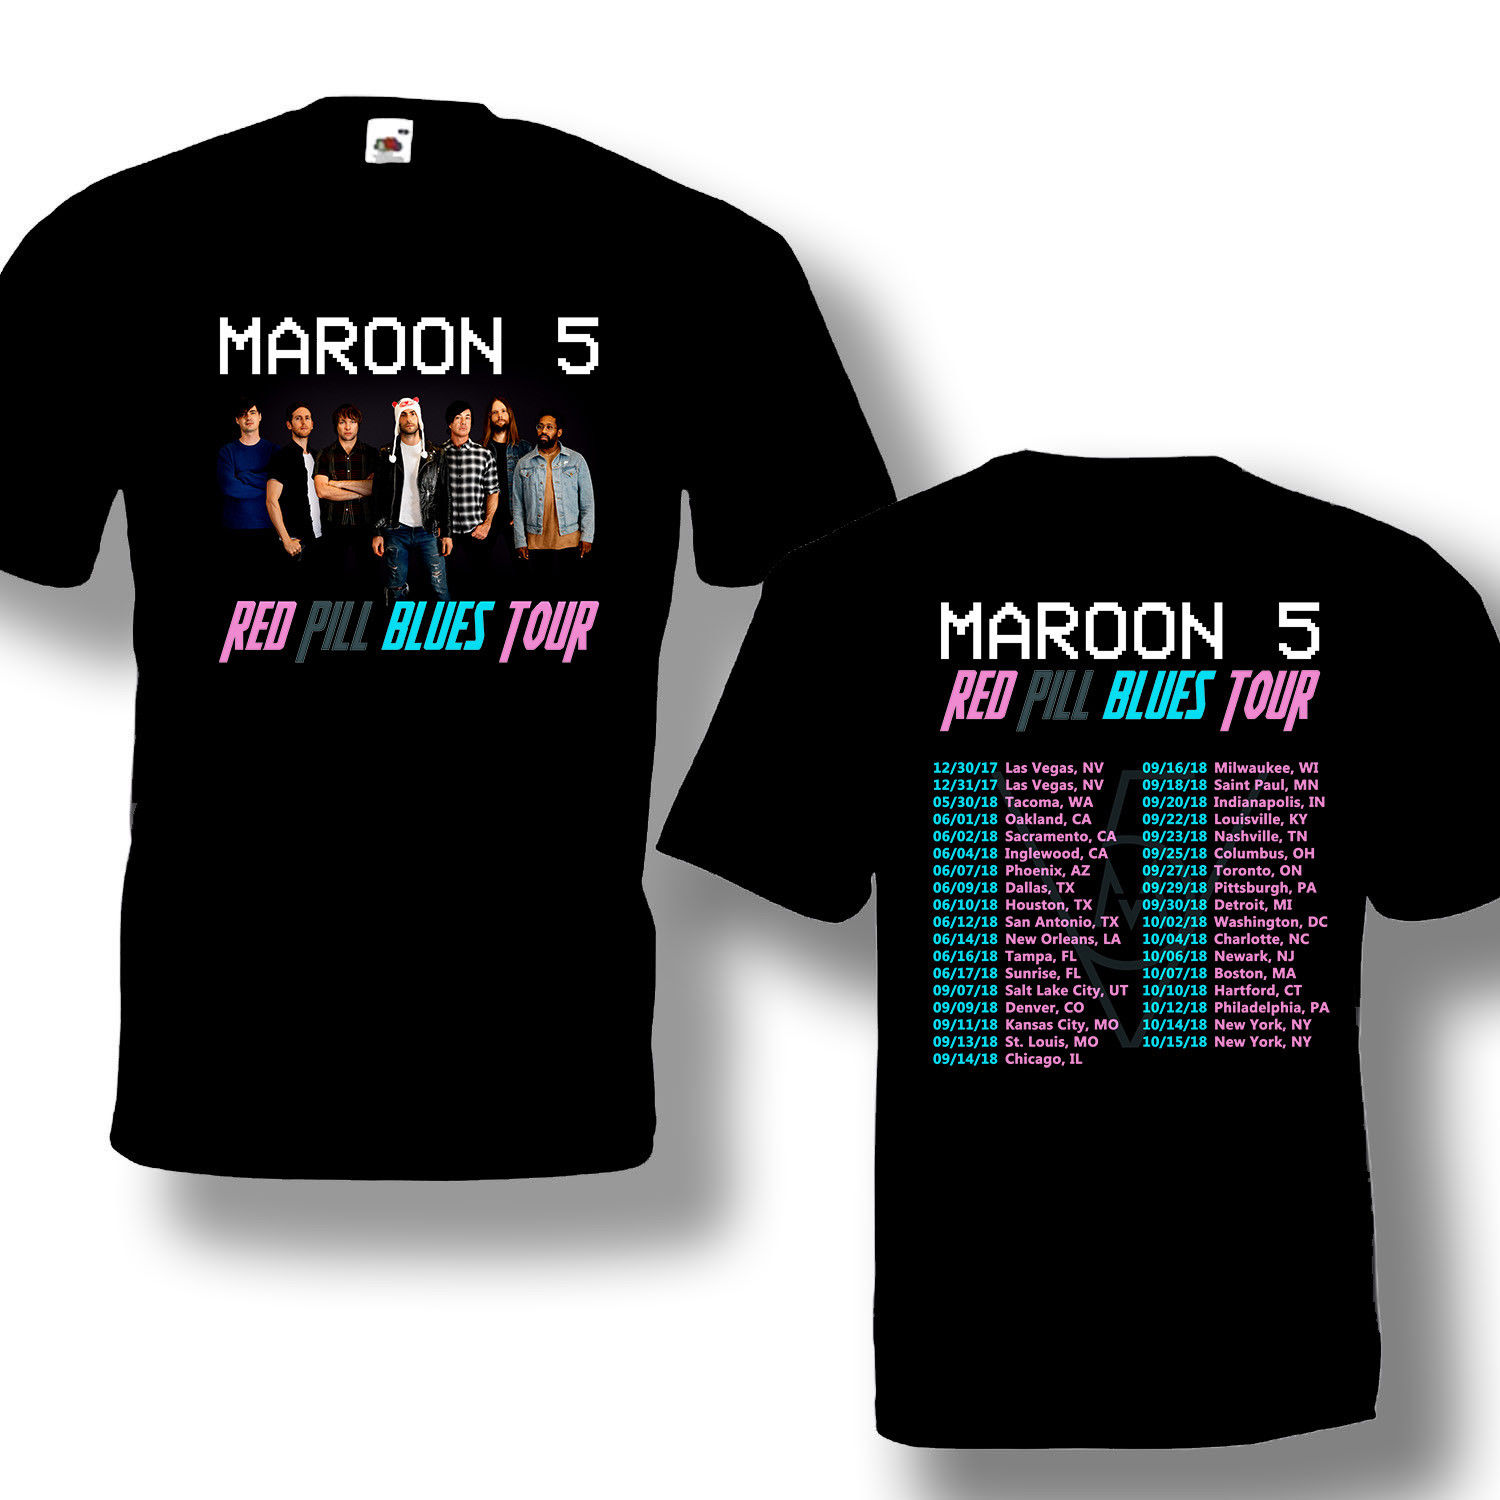 Men Short O Neck T Shirt Maroon 5 Tour 2018 Tshirt With Tour Date Black Color Hot Design For Sale